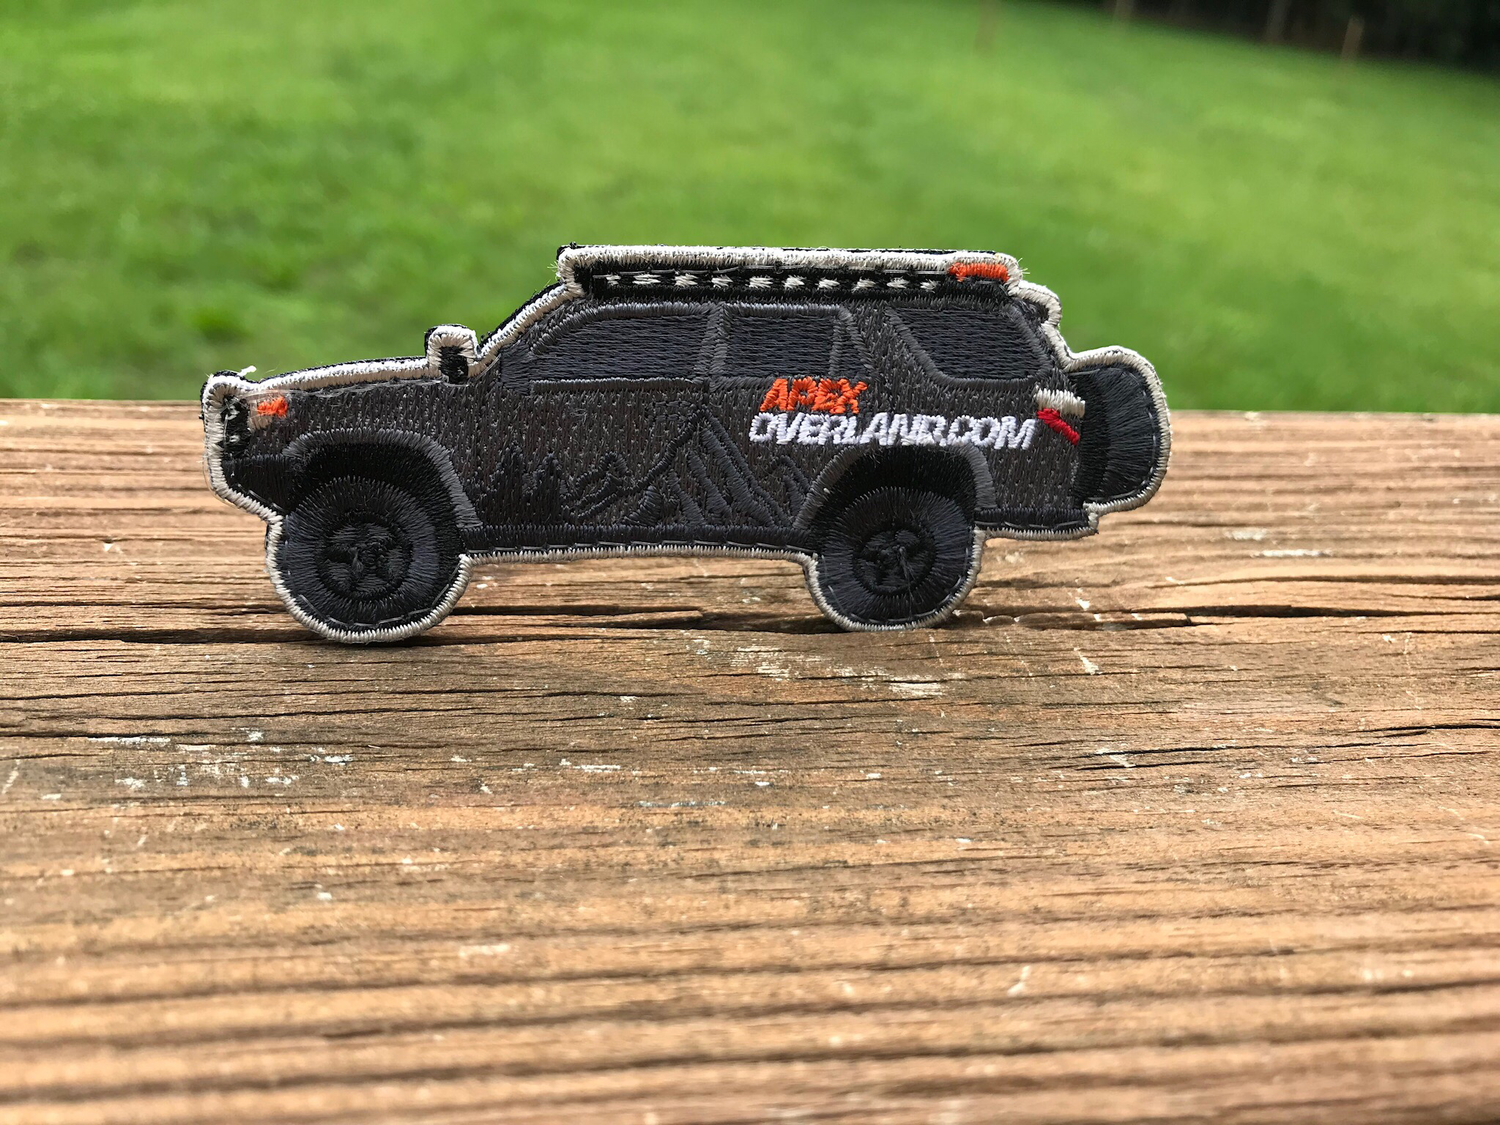 Apex Overland - 4Runner Patch!!